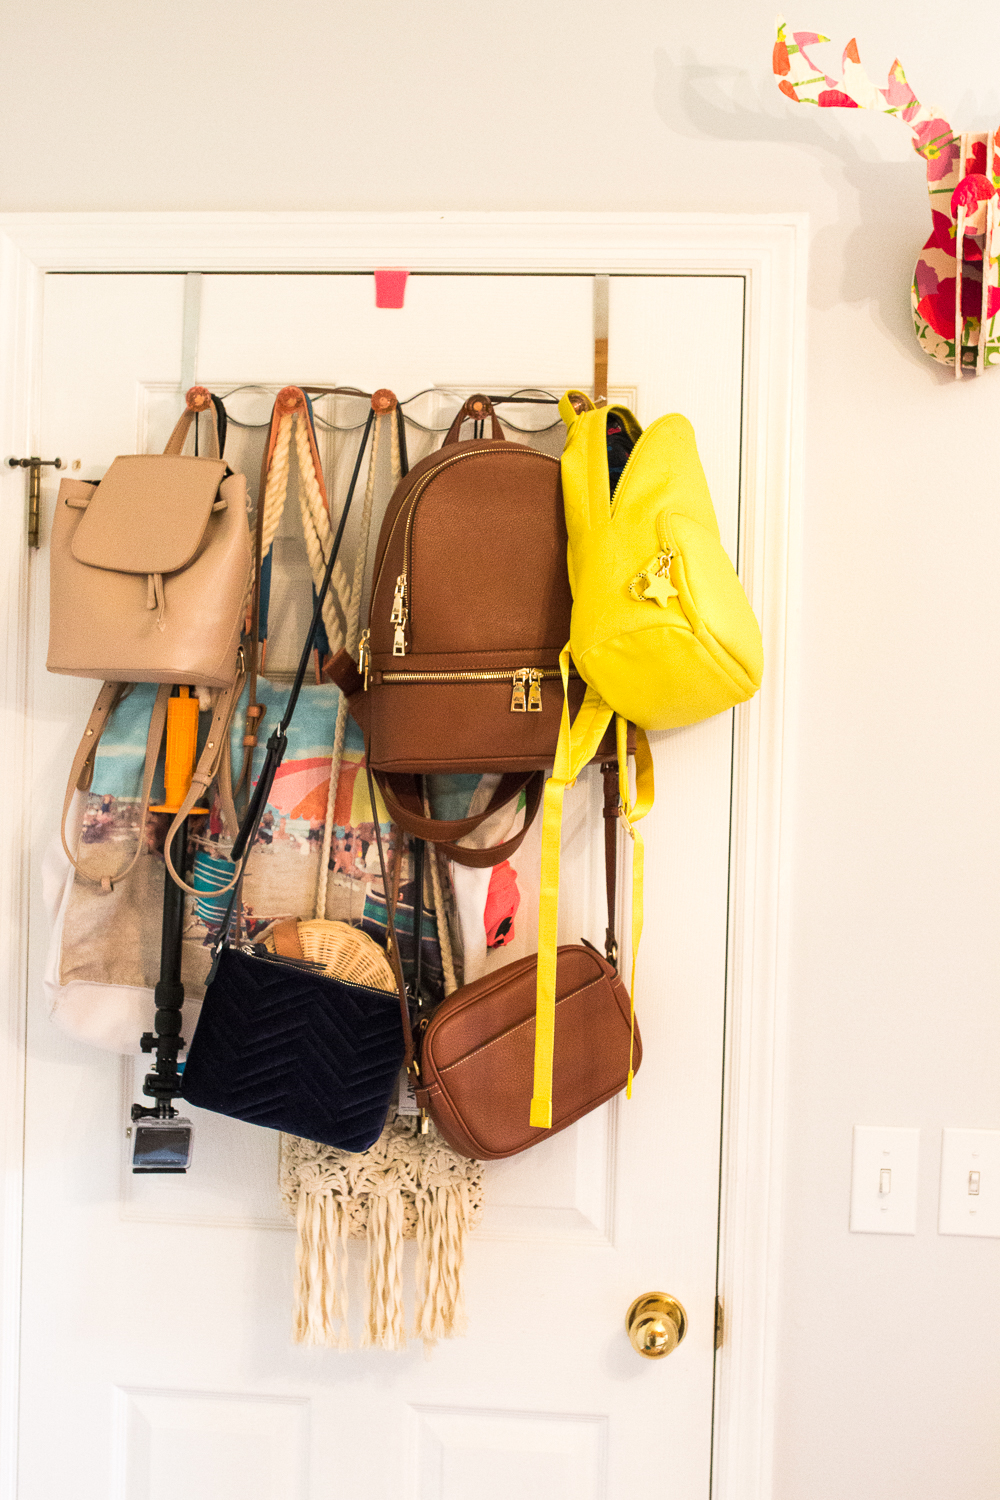 How to Organize Accessories in Small Space